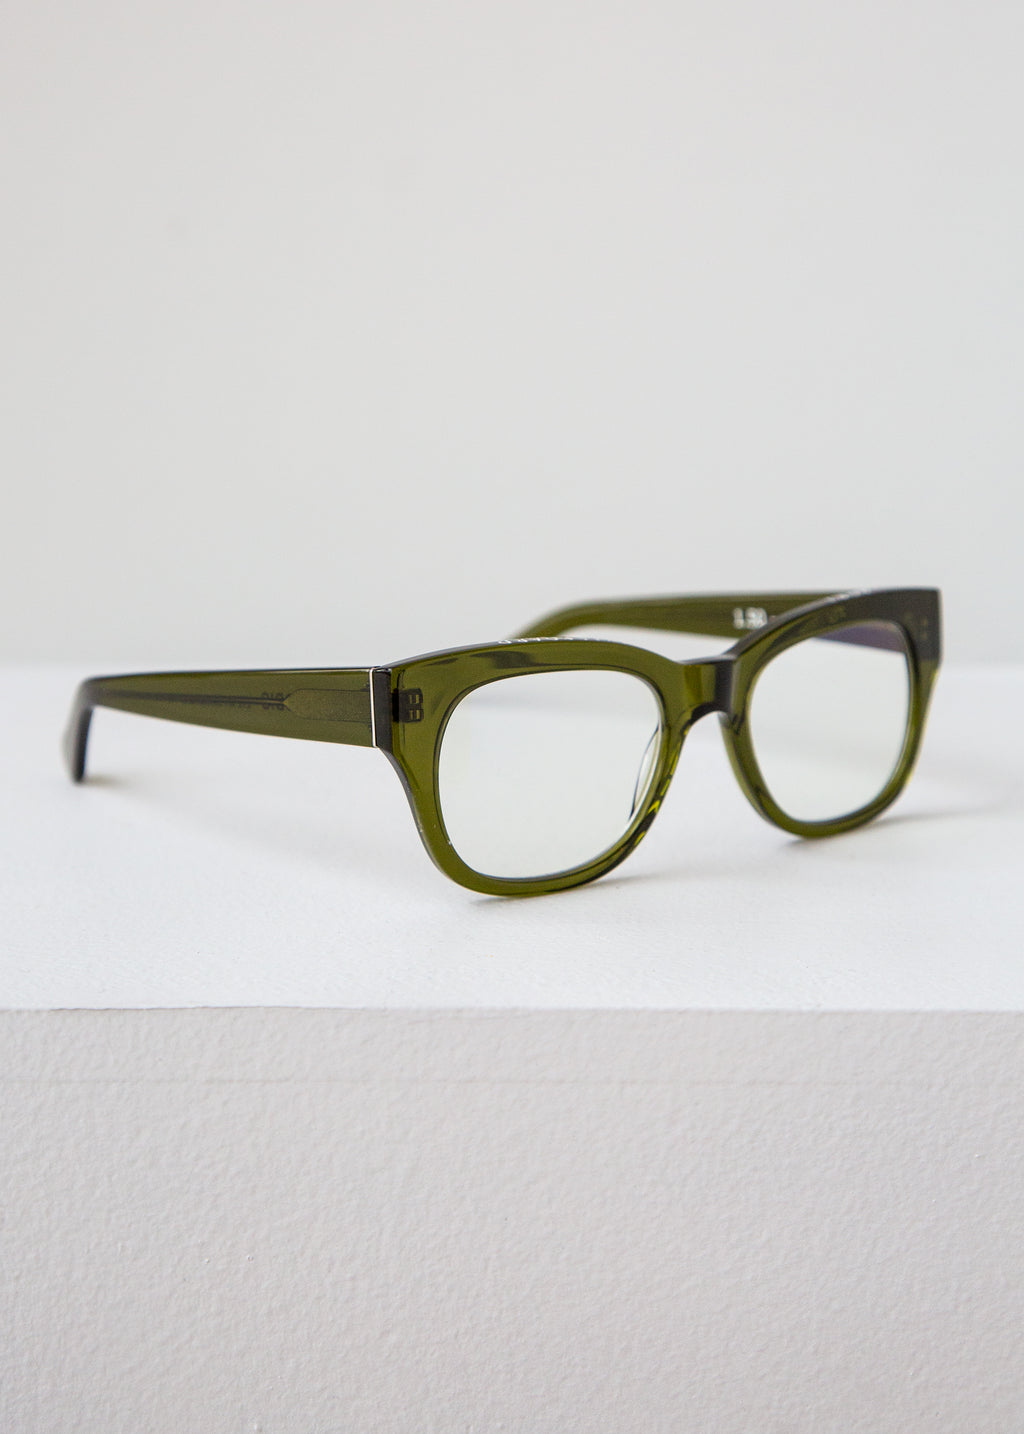 Miklos Reader in Heritage Green